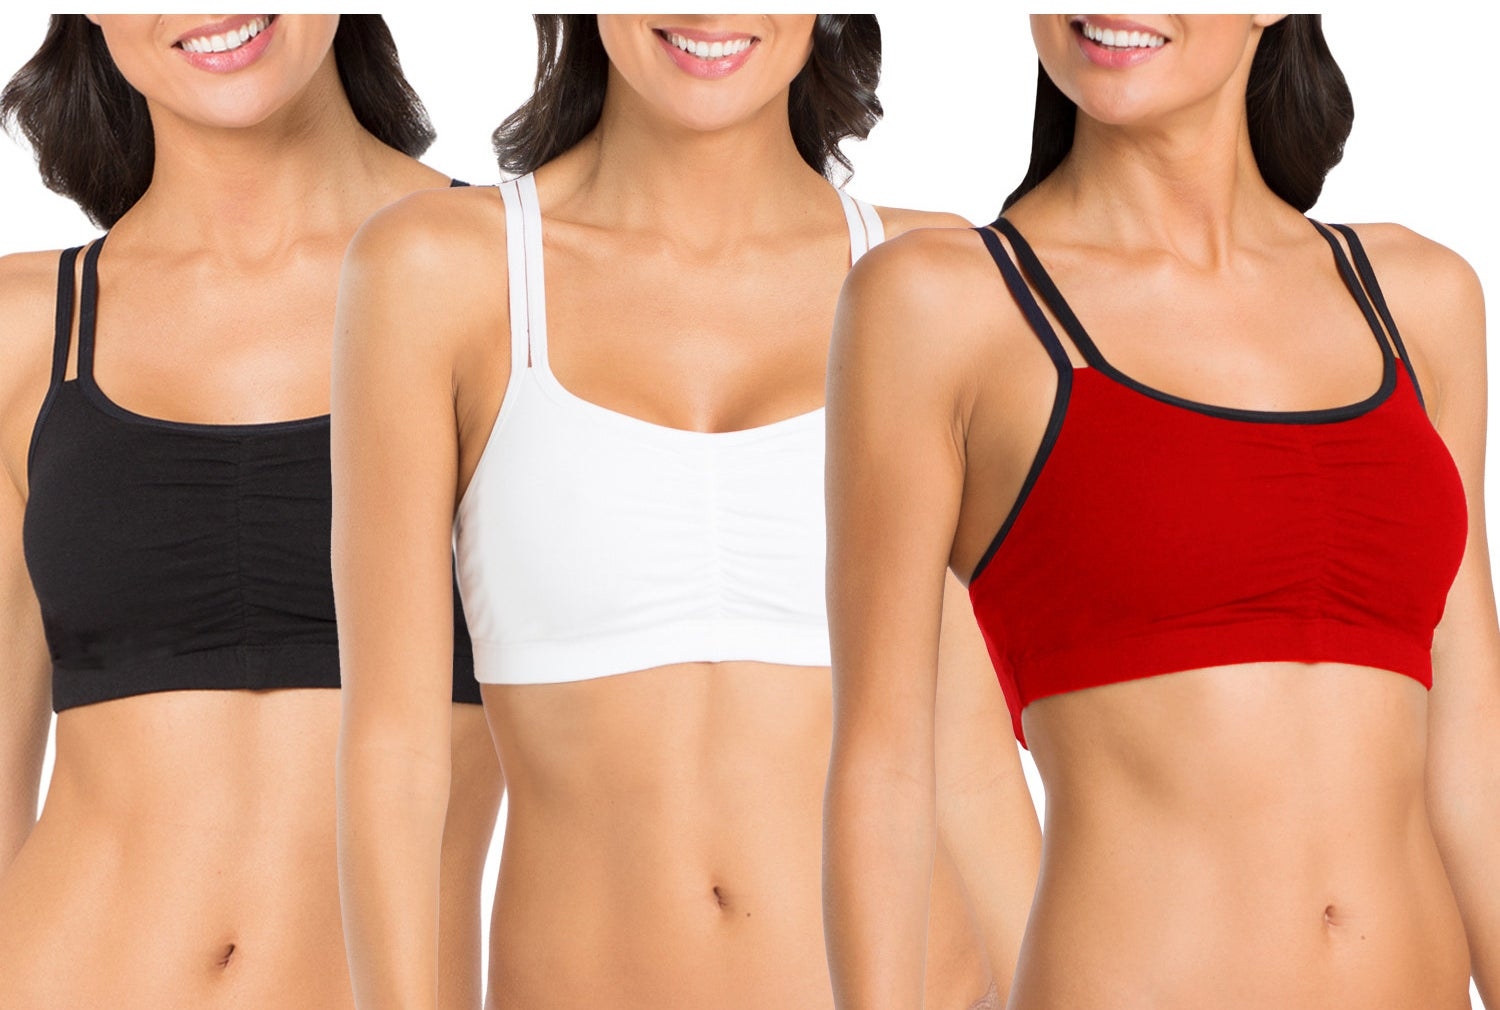 Models wearing the sports bras in black, white, and red